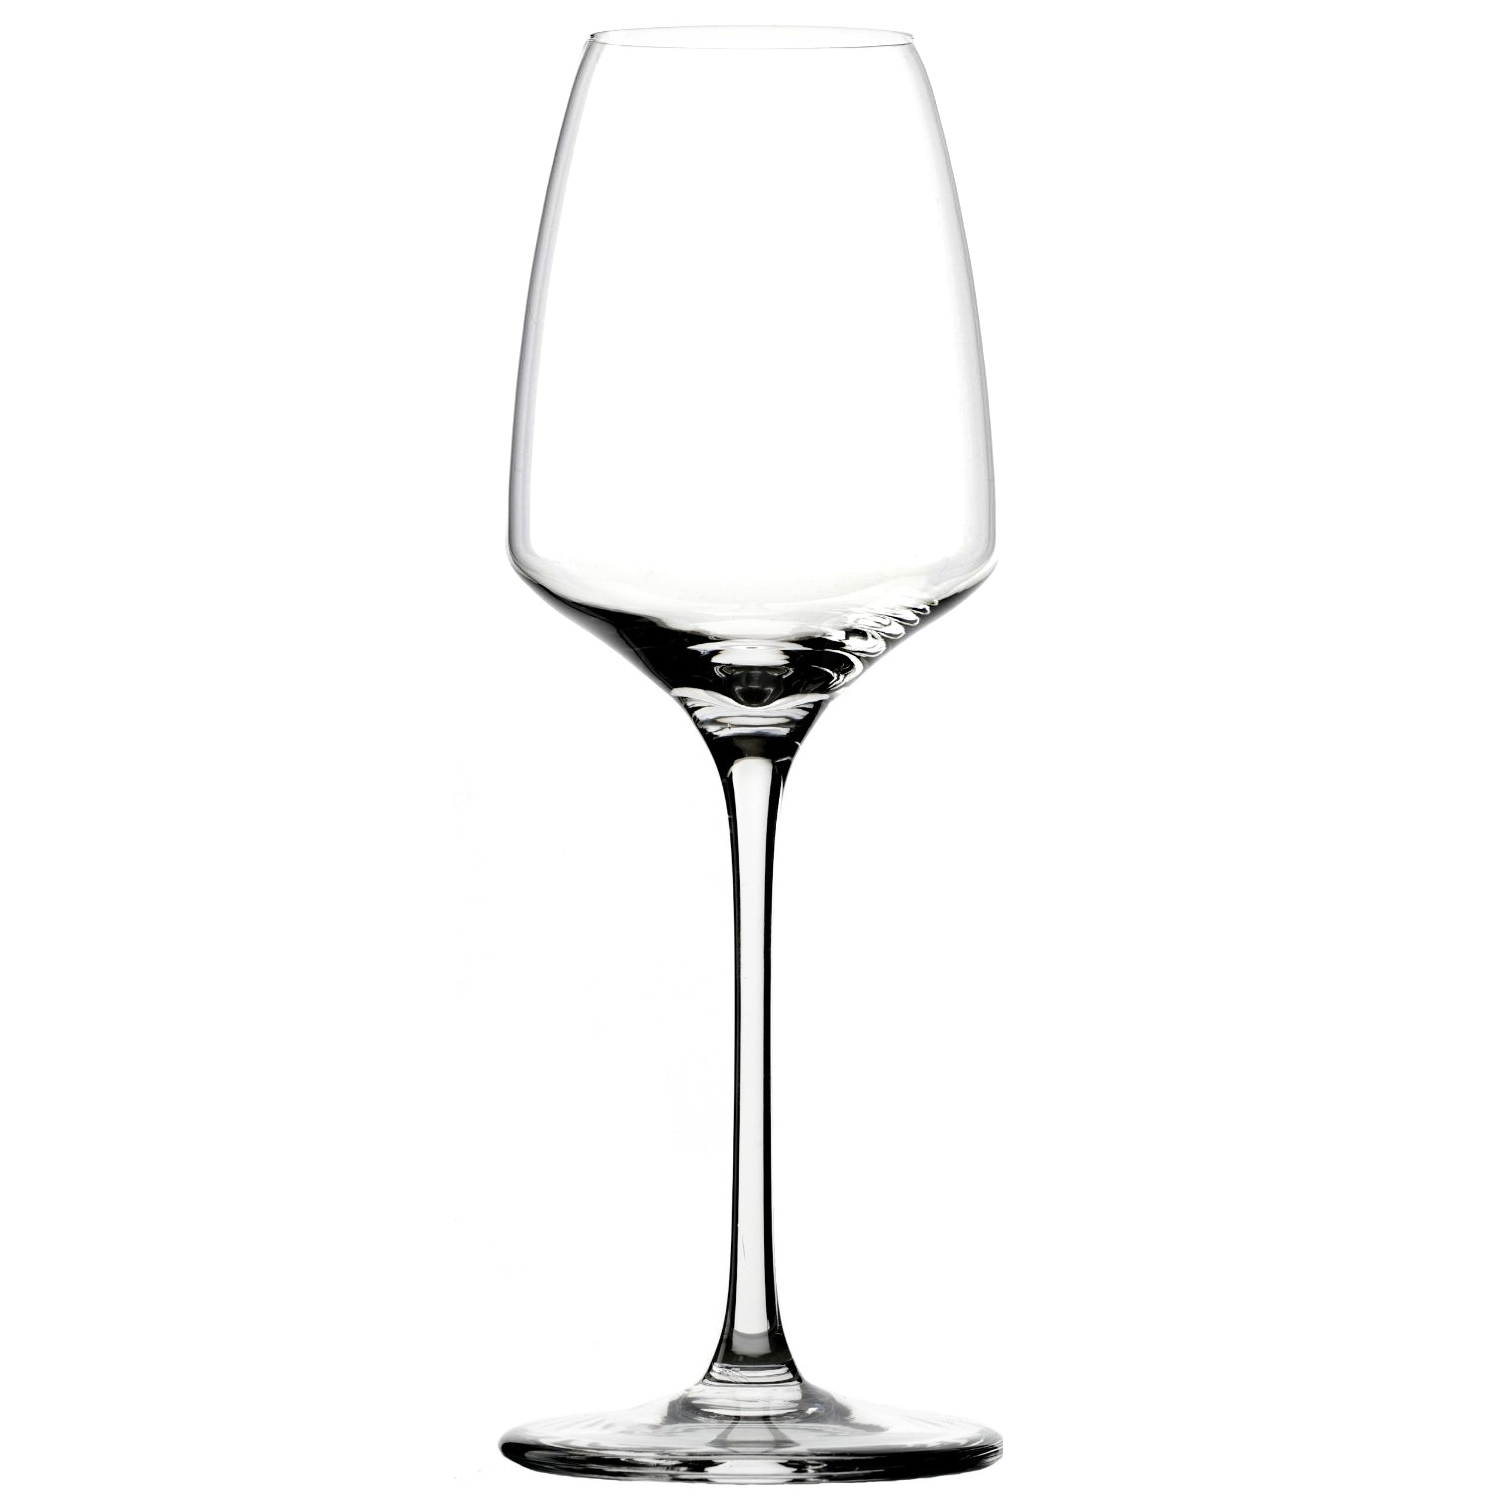 Stolzle Experience Crystal White Wine Glass, Set of 4